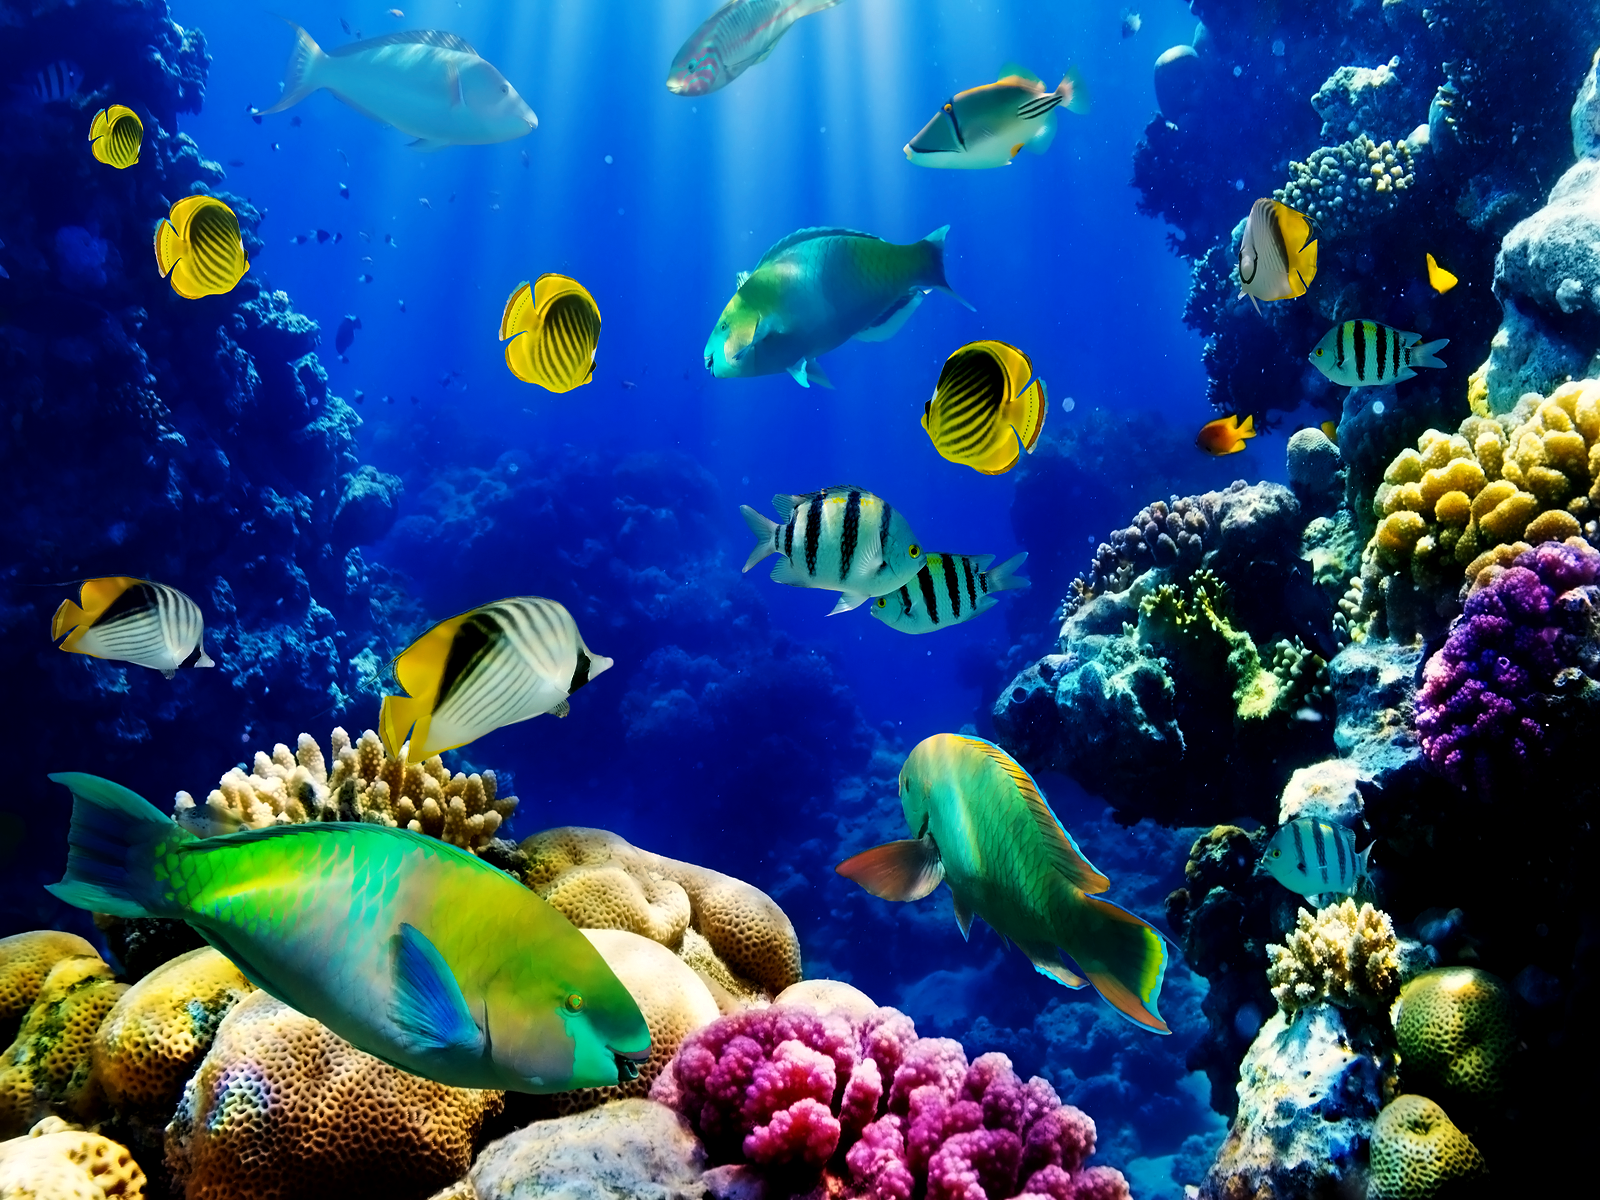 Fish aquarium live wallpaper -